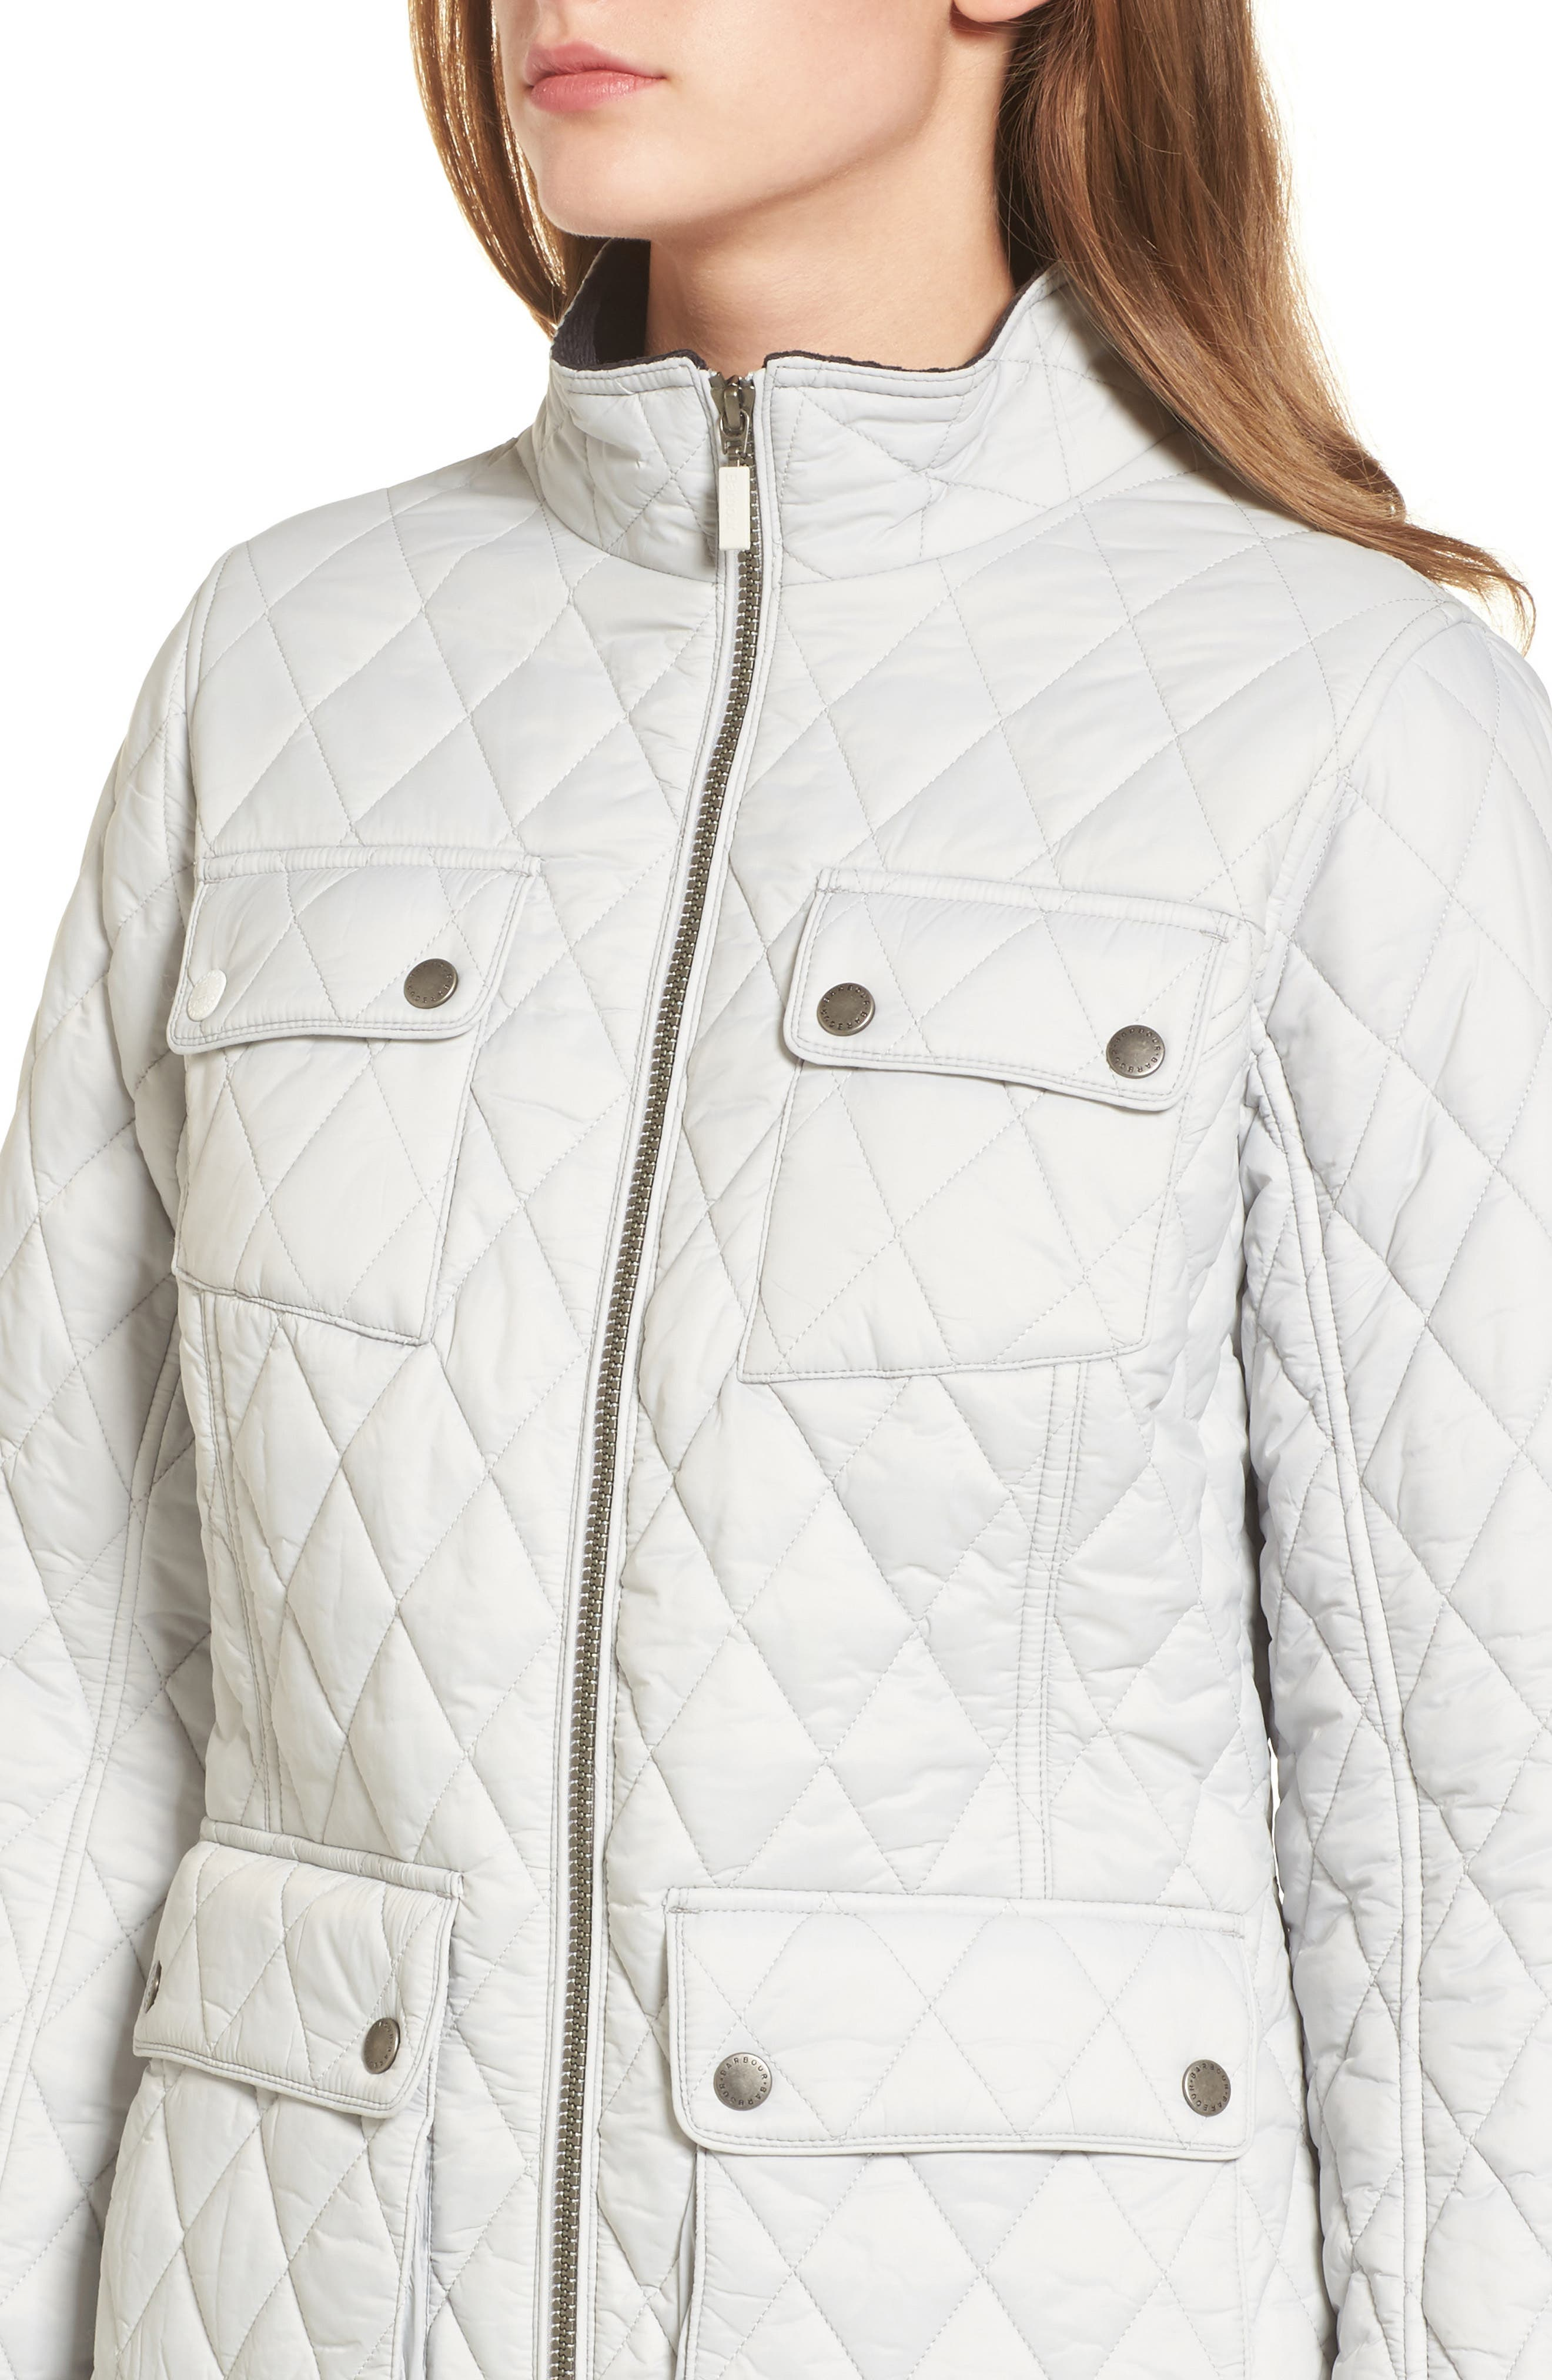 Dolostone Quilted Jacket,                             Alternate thumbnail 4, color,                             150